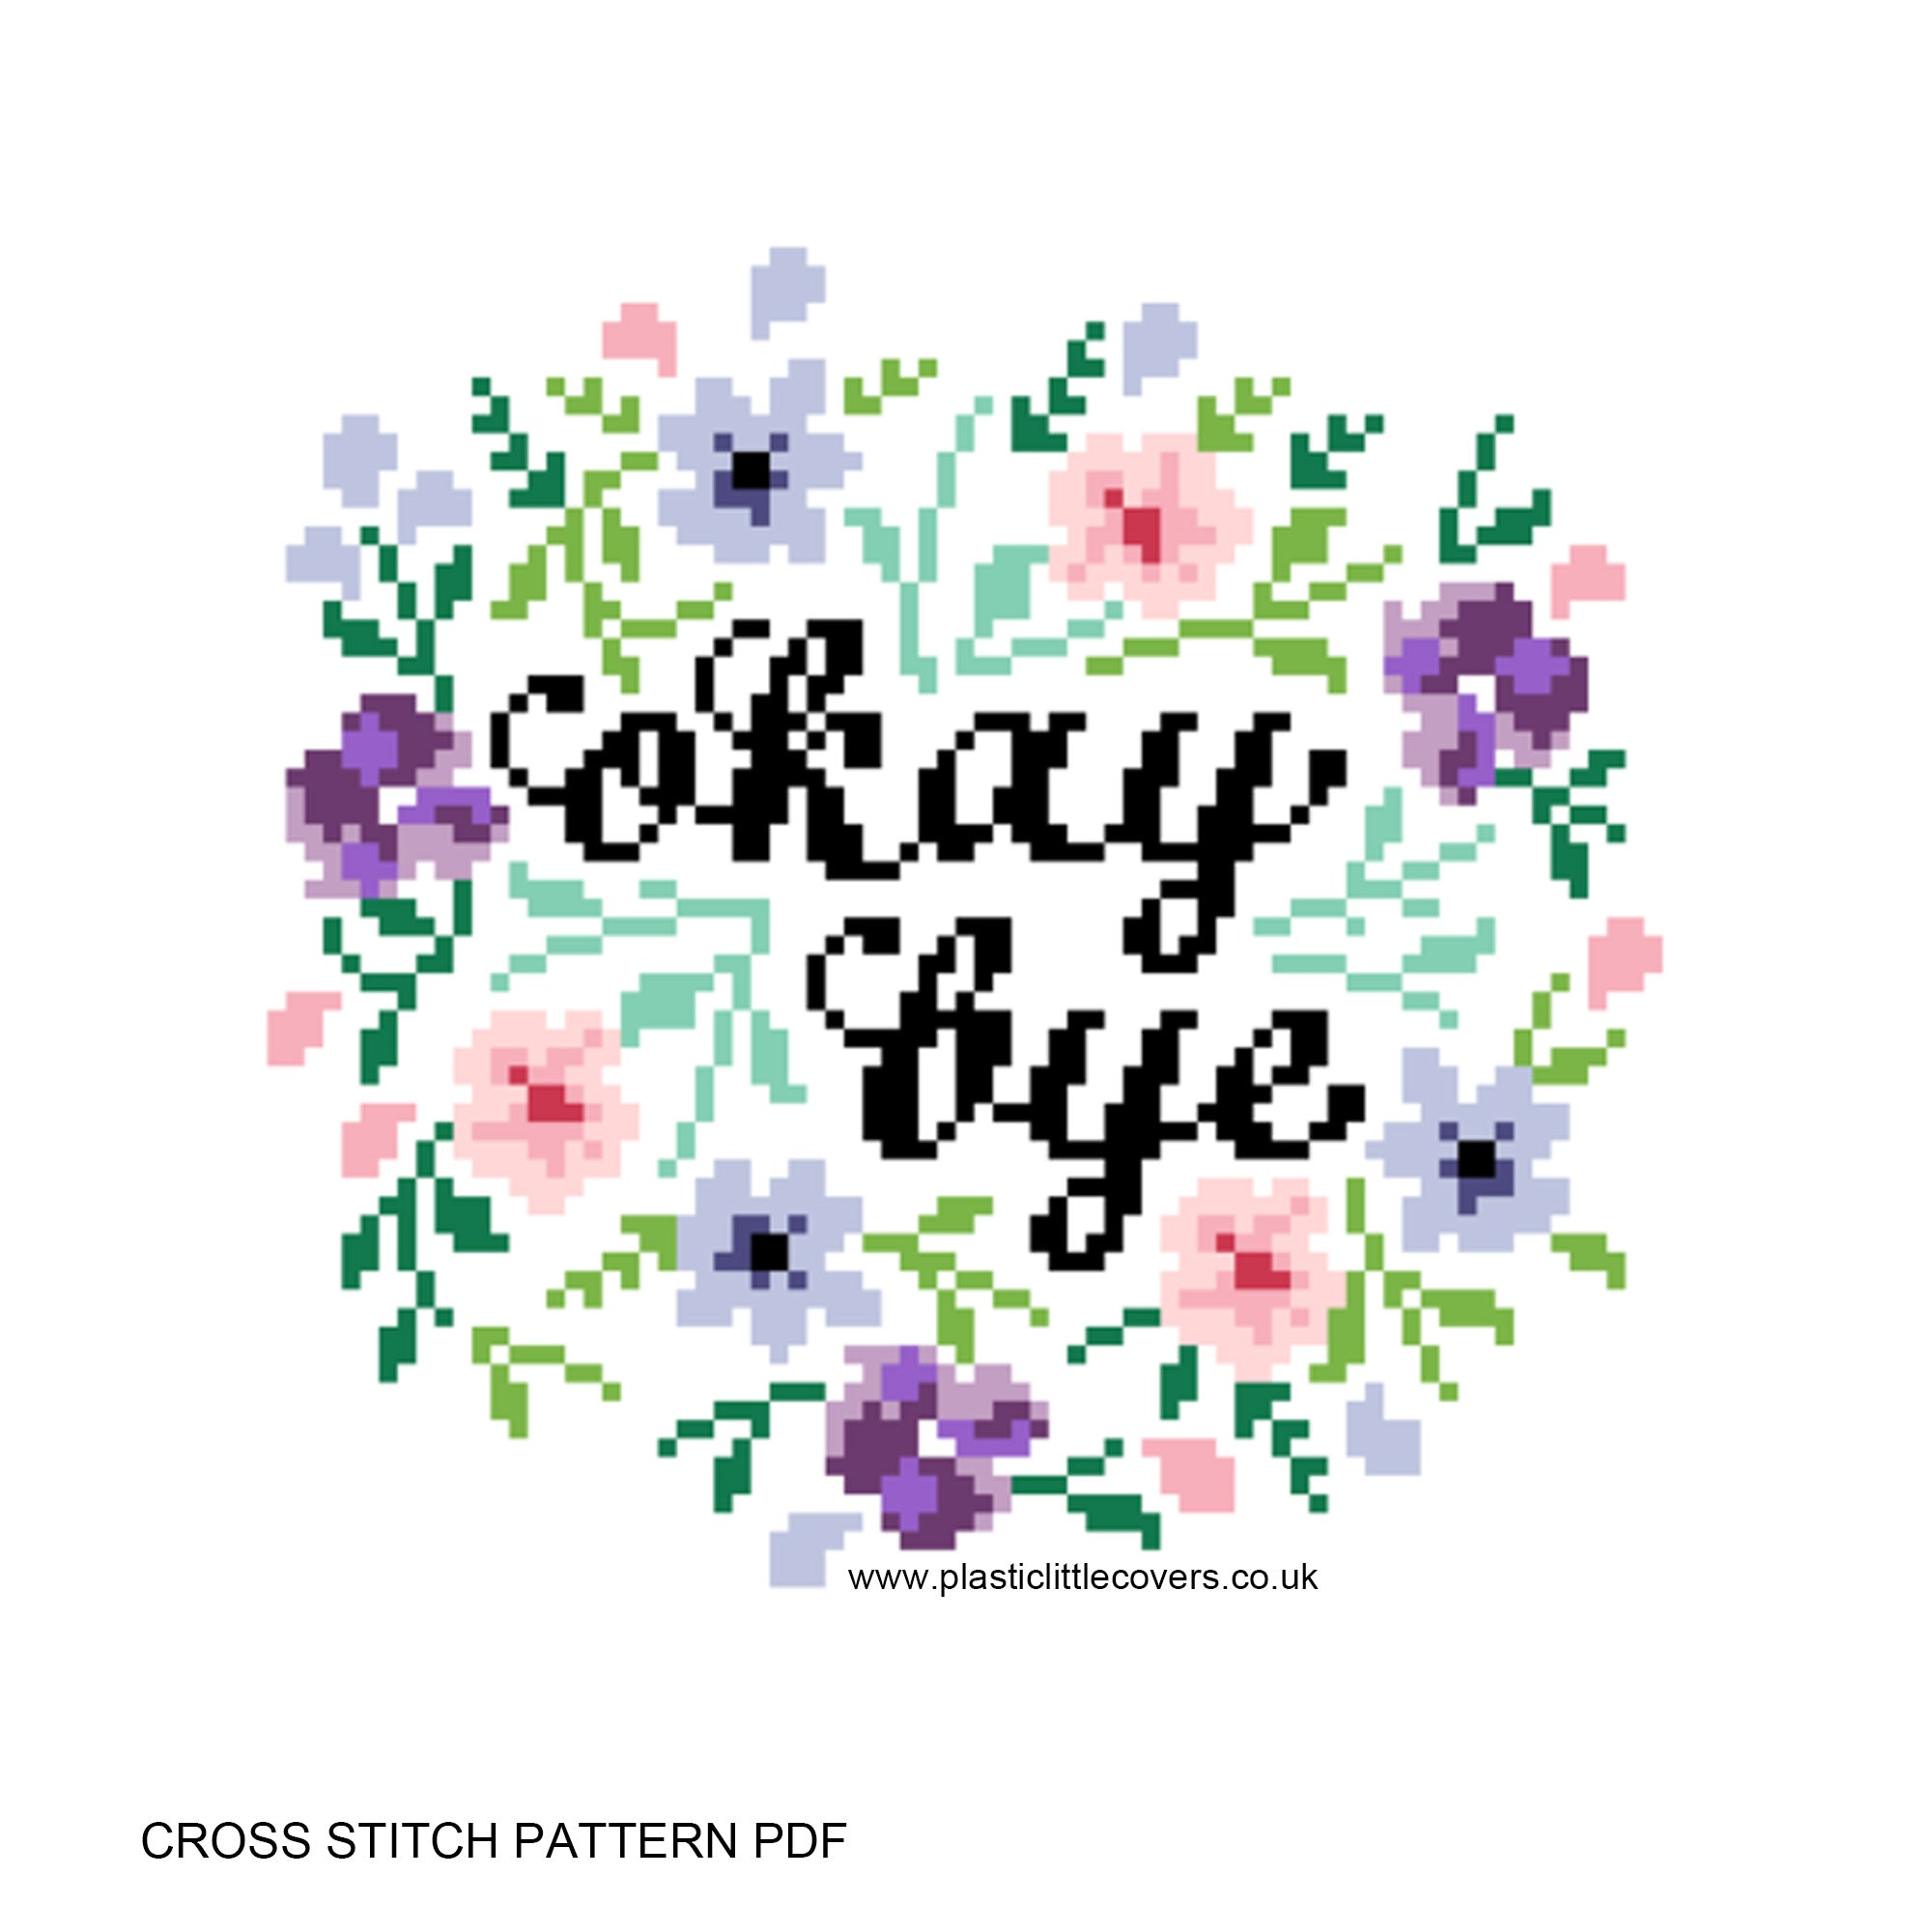 Okay Bye - Cross Stitch Pattern PDF.